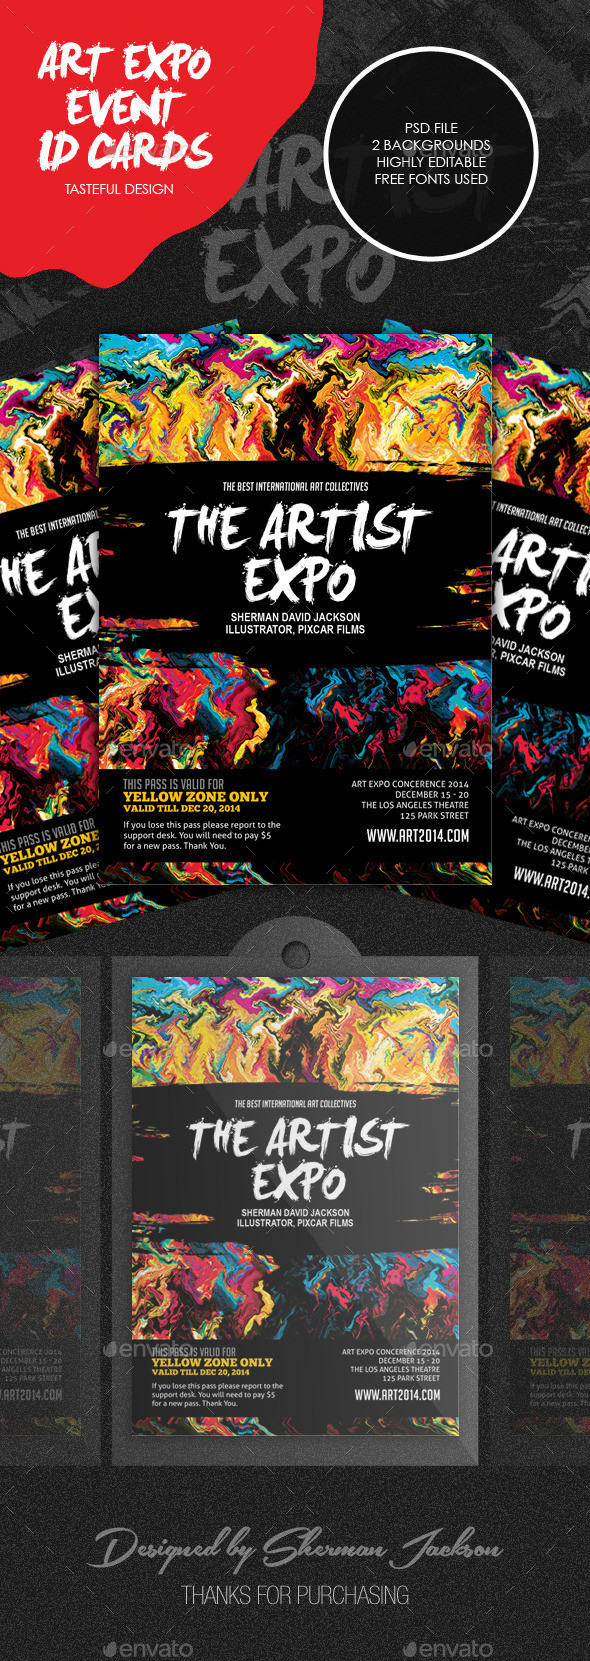 Art event expo id prev